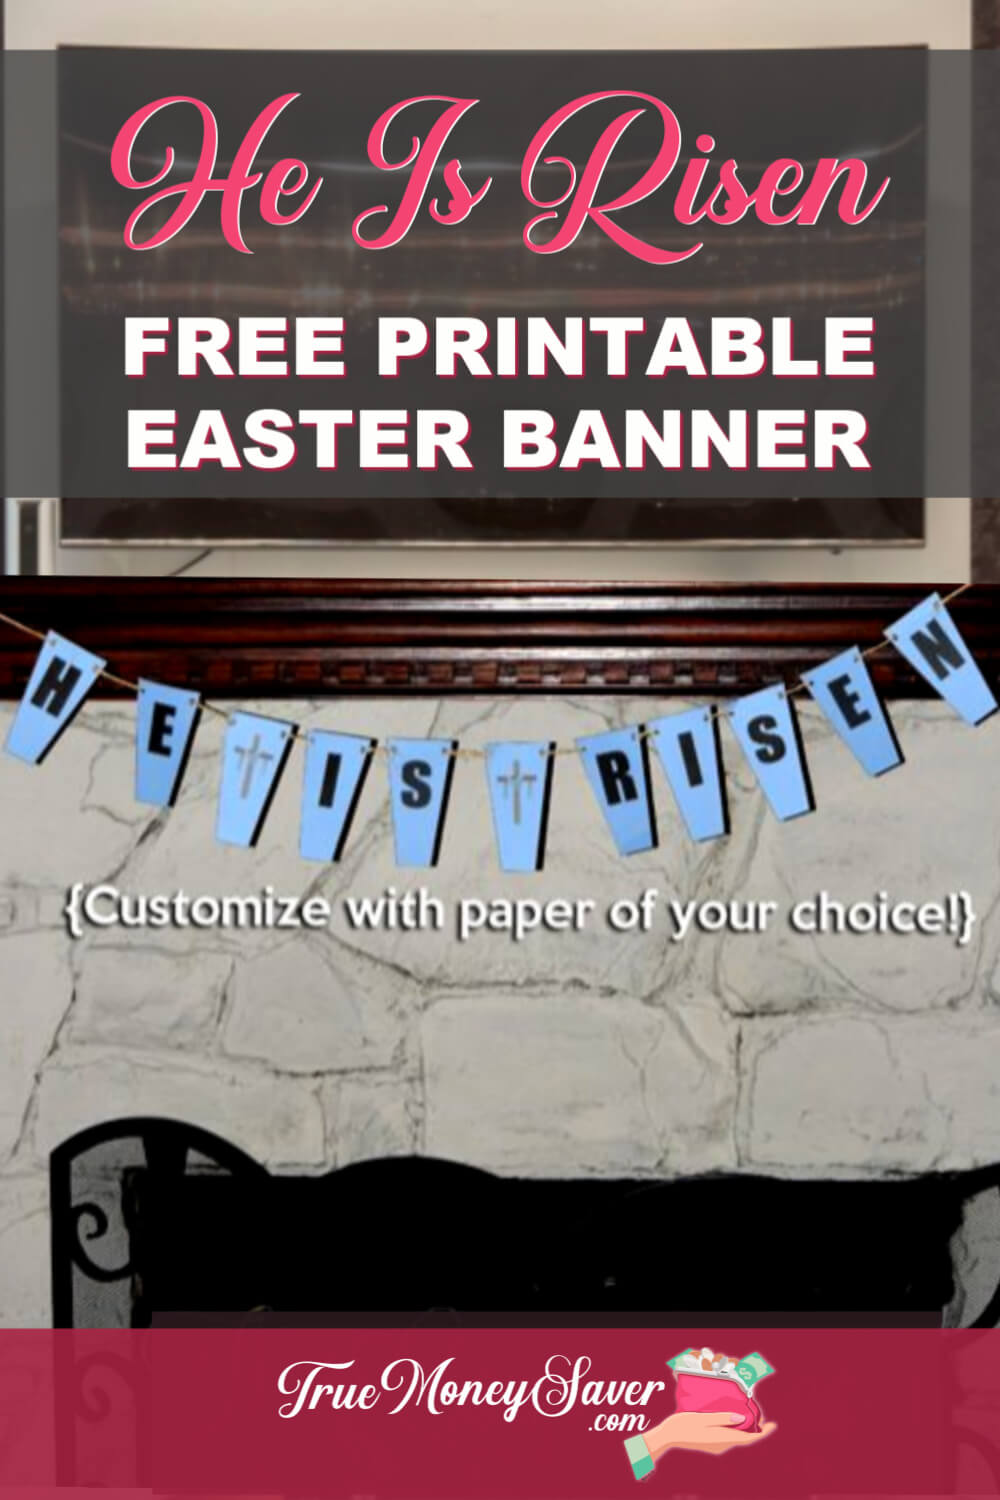 Need a project to do with the kids? Make this He Is Risen Easter Banner! This DIY Easter banner is so easy and the kids can get involved and help. Plus, this FREE Easter banner printable can be used anywhere in your home! Grab this FREEbie today! #truemoneysaver #diy #diycrafts #eastercrafts #easter #easterbanner #easterbanners #freeeasterbanner #freeprintable #heisrisen #heisrisenindeed #heisrisenbanner